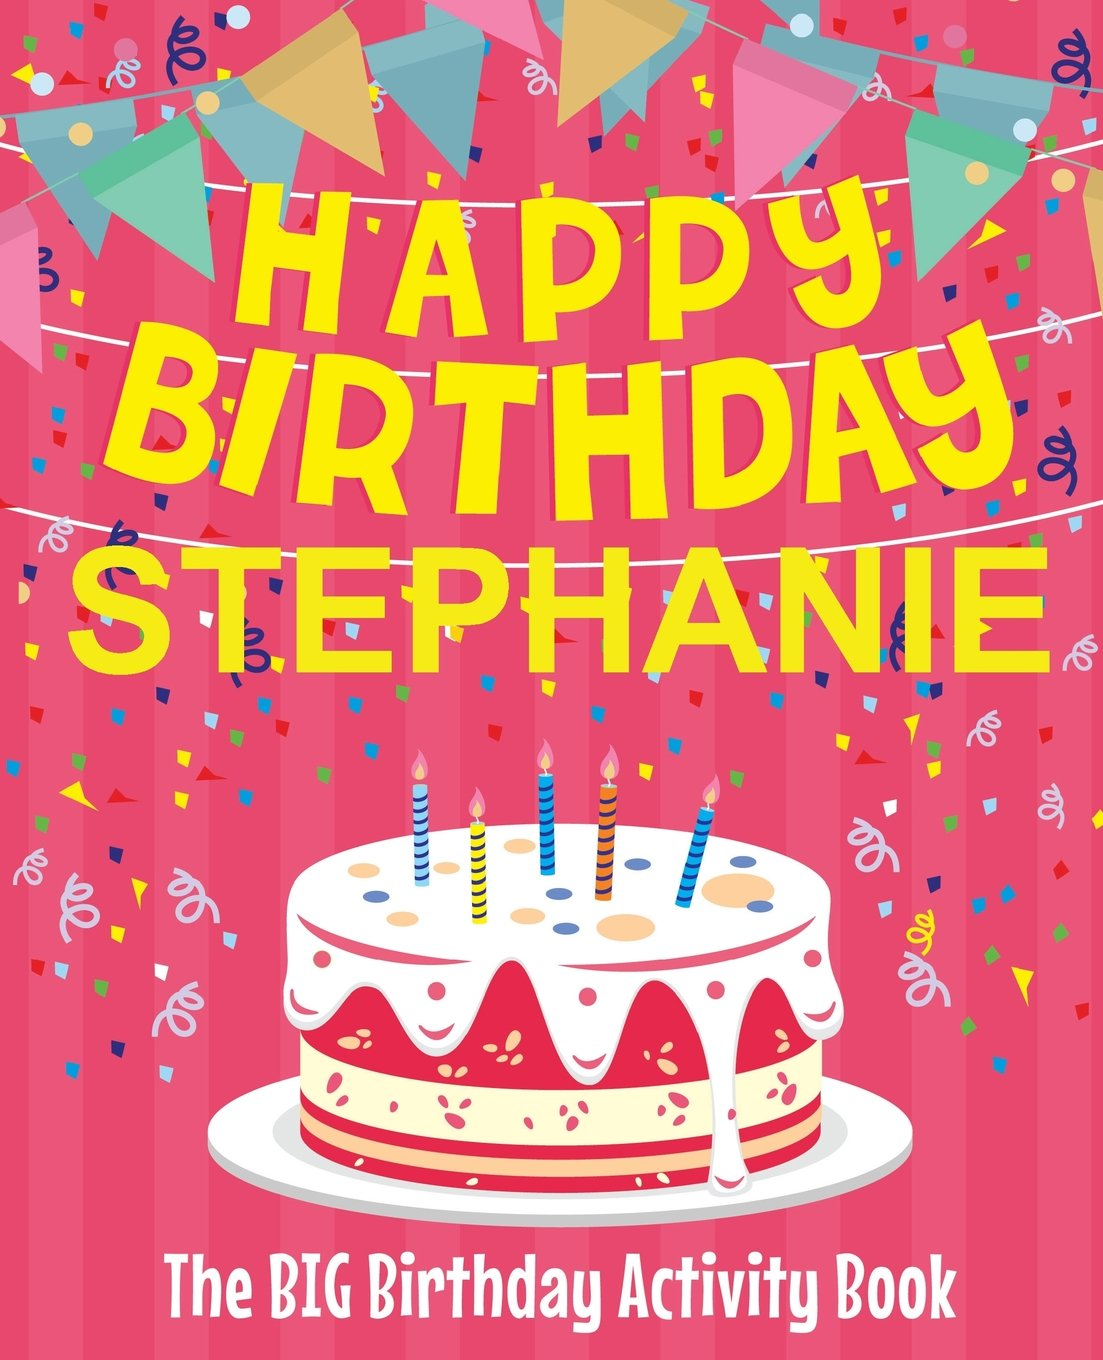 Birthday Stephanie Happy Daughter 10